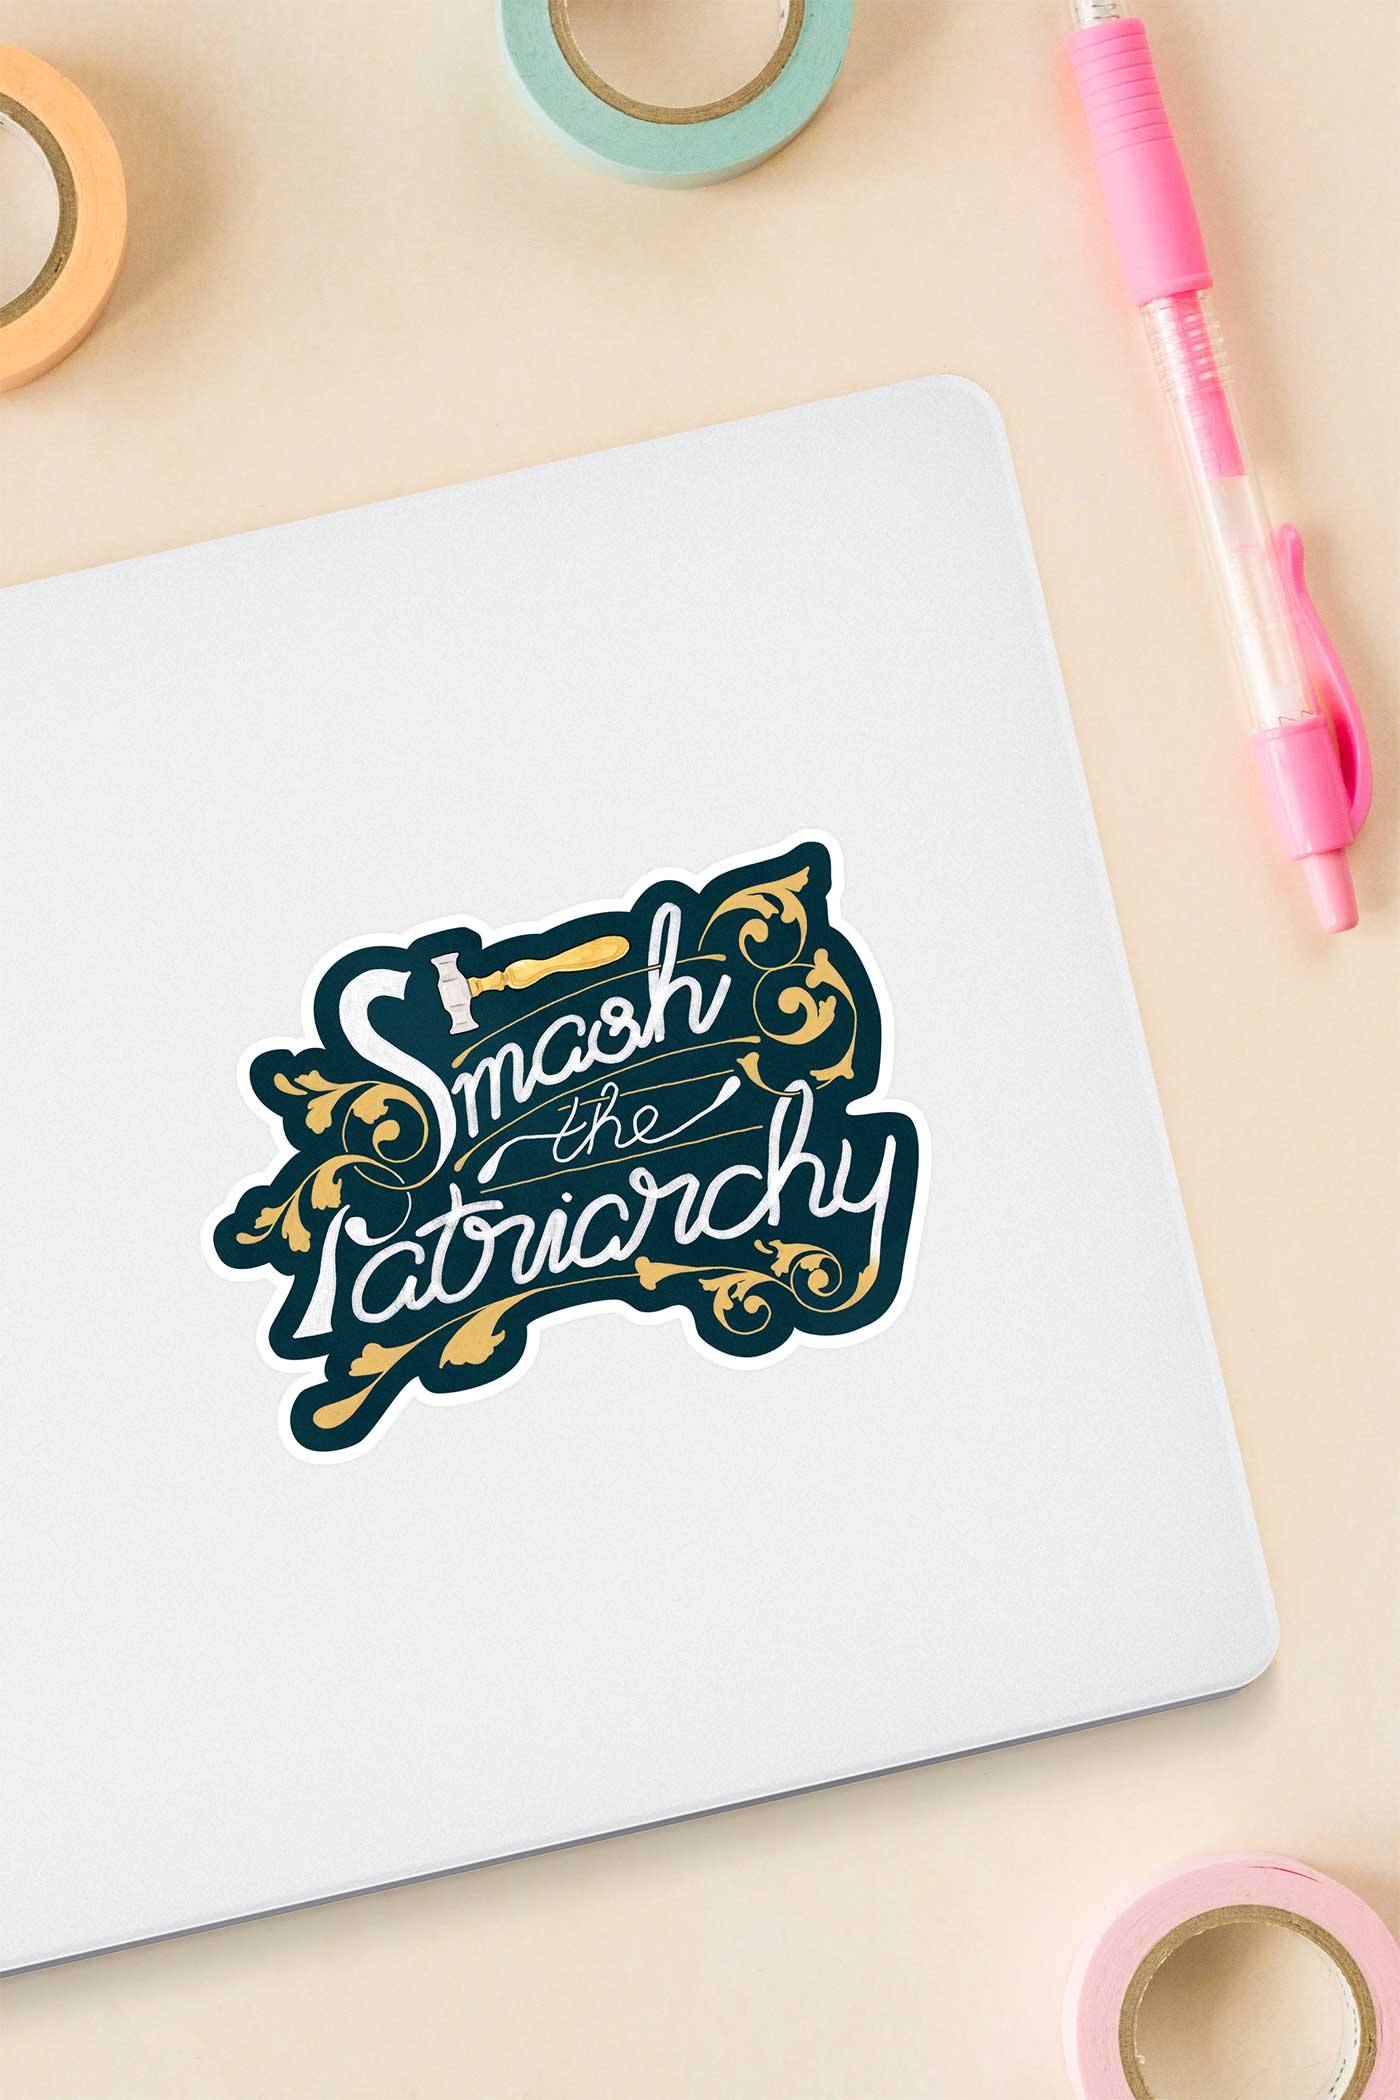 Smash the Patriarchy Feminist Vinyl Sticker - A Rose Cast